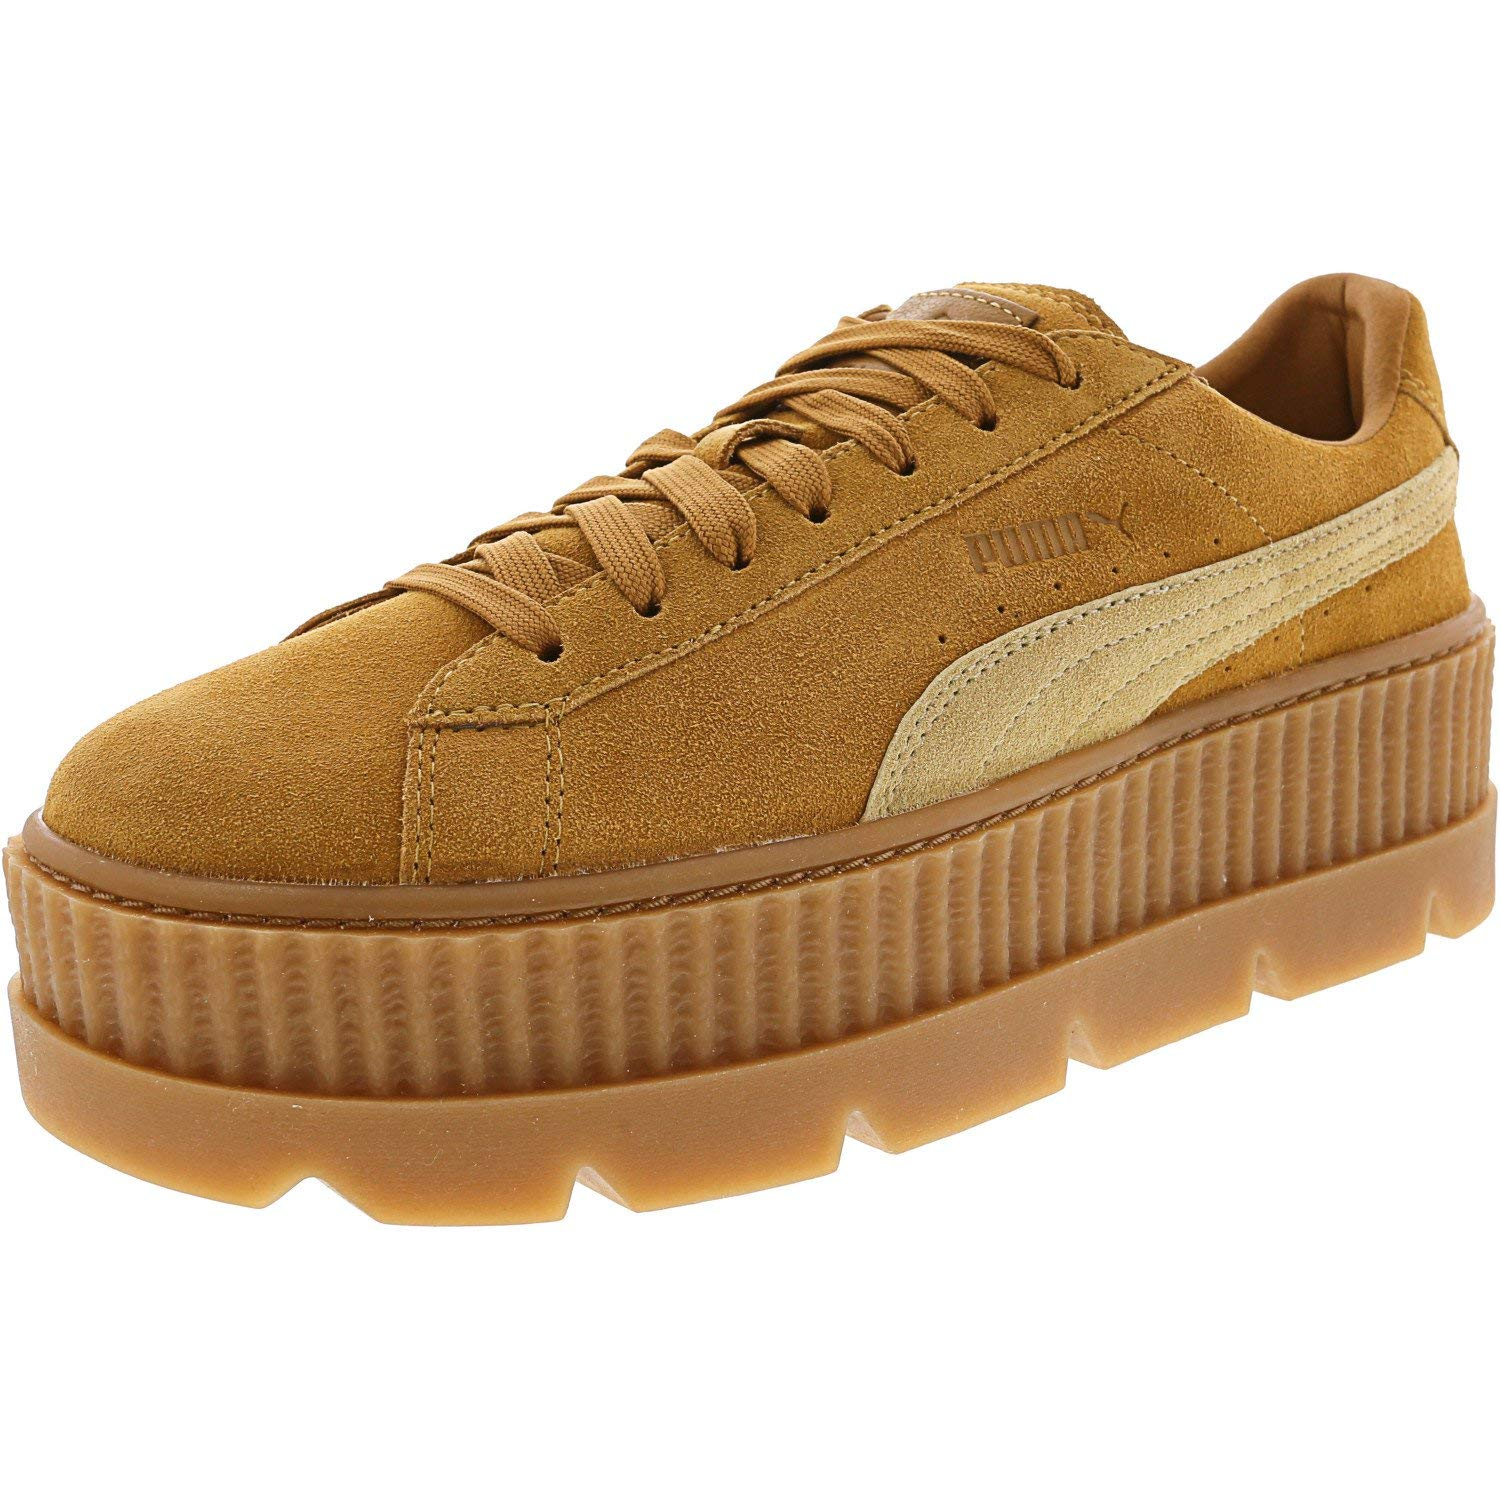 new product 8c33a aaa0d PUMA Womens Fenty by Rihanna Suede Cleated Creeper Casual Sneakers,